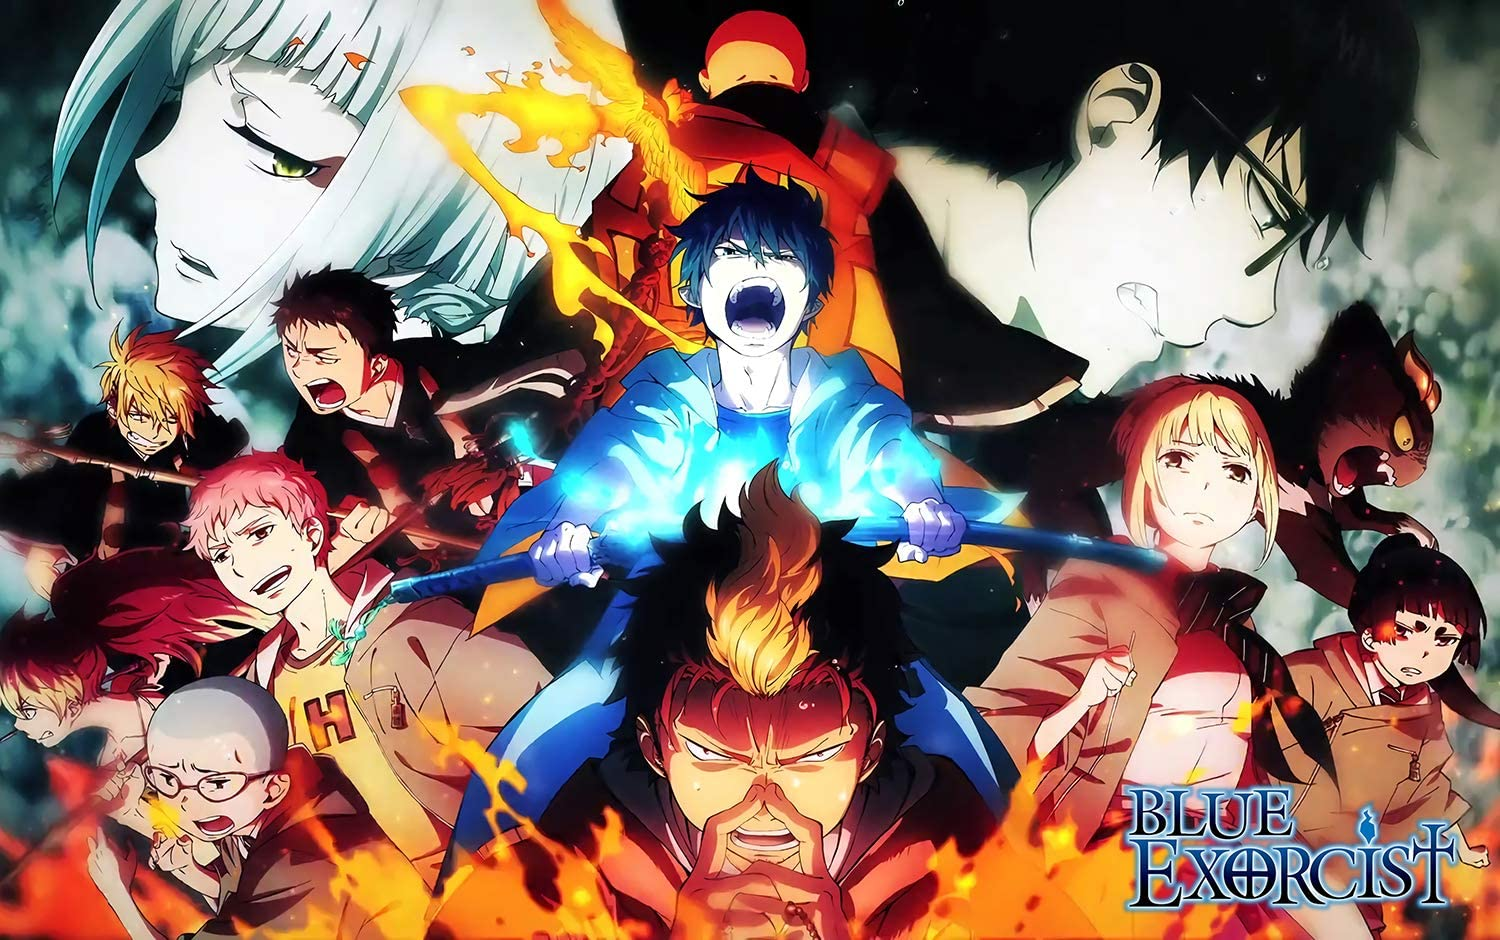 """Blue Exorcist Anime Poster and Prints Unframed Wall Art Gifts Decor 12x18"""""""